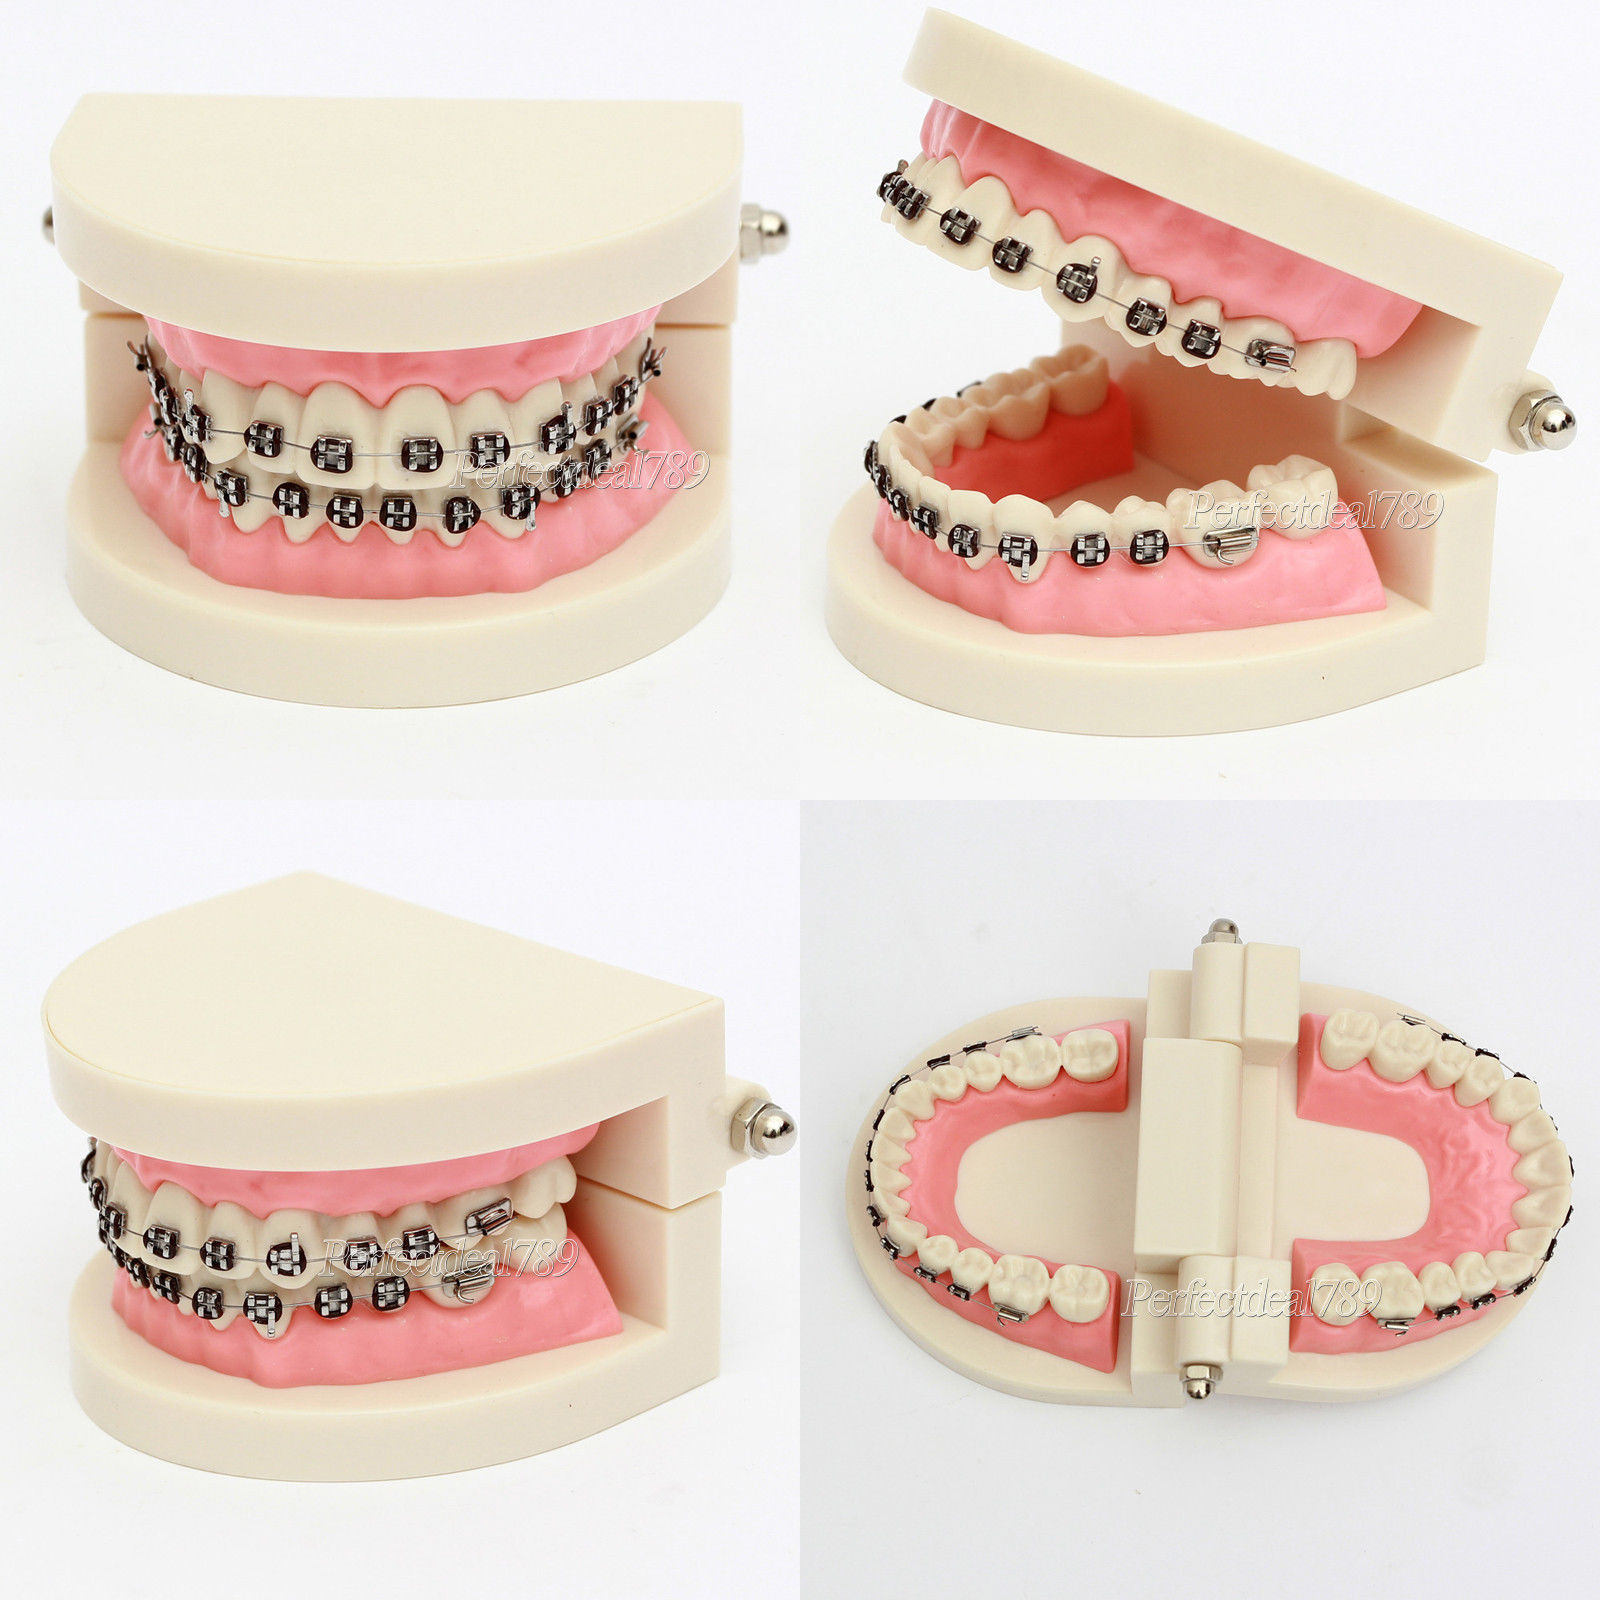 Dental Teach Study Standard Typodont Demonstration Teeth Model With Bracket 1 Pc 2016 new arrival dental orthodontics typodont teeth model metal brace bracket typodont with arch wire toiletry kits